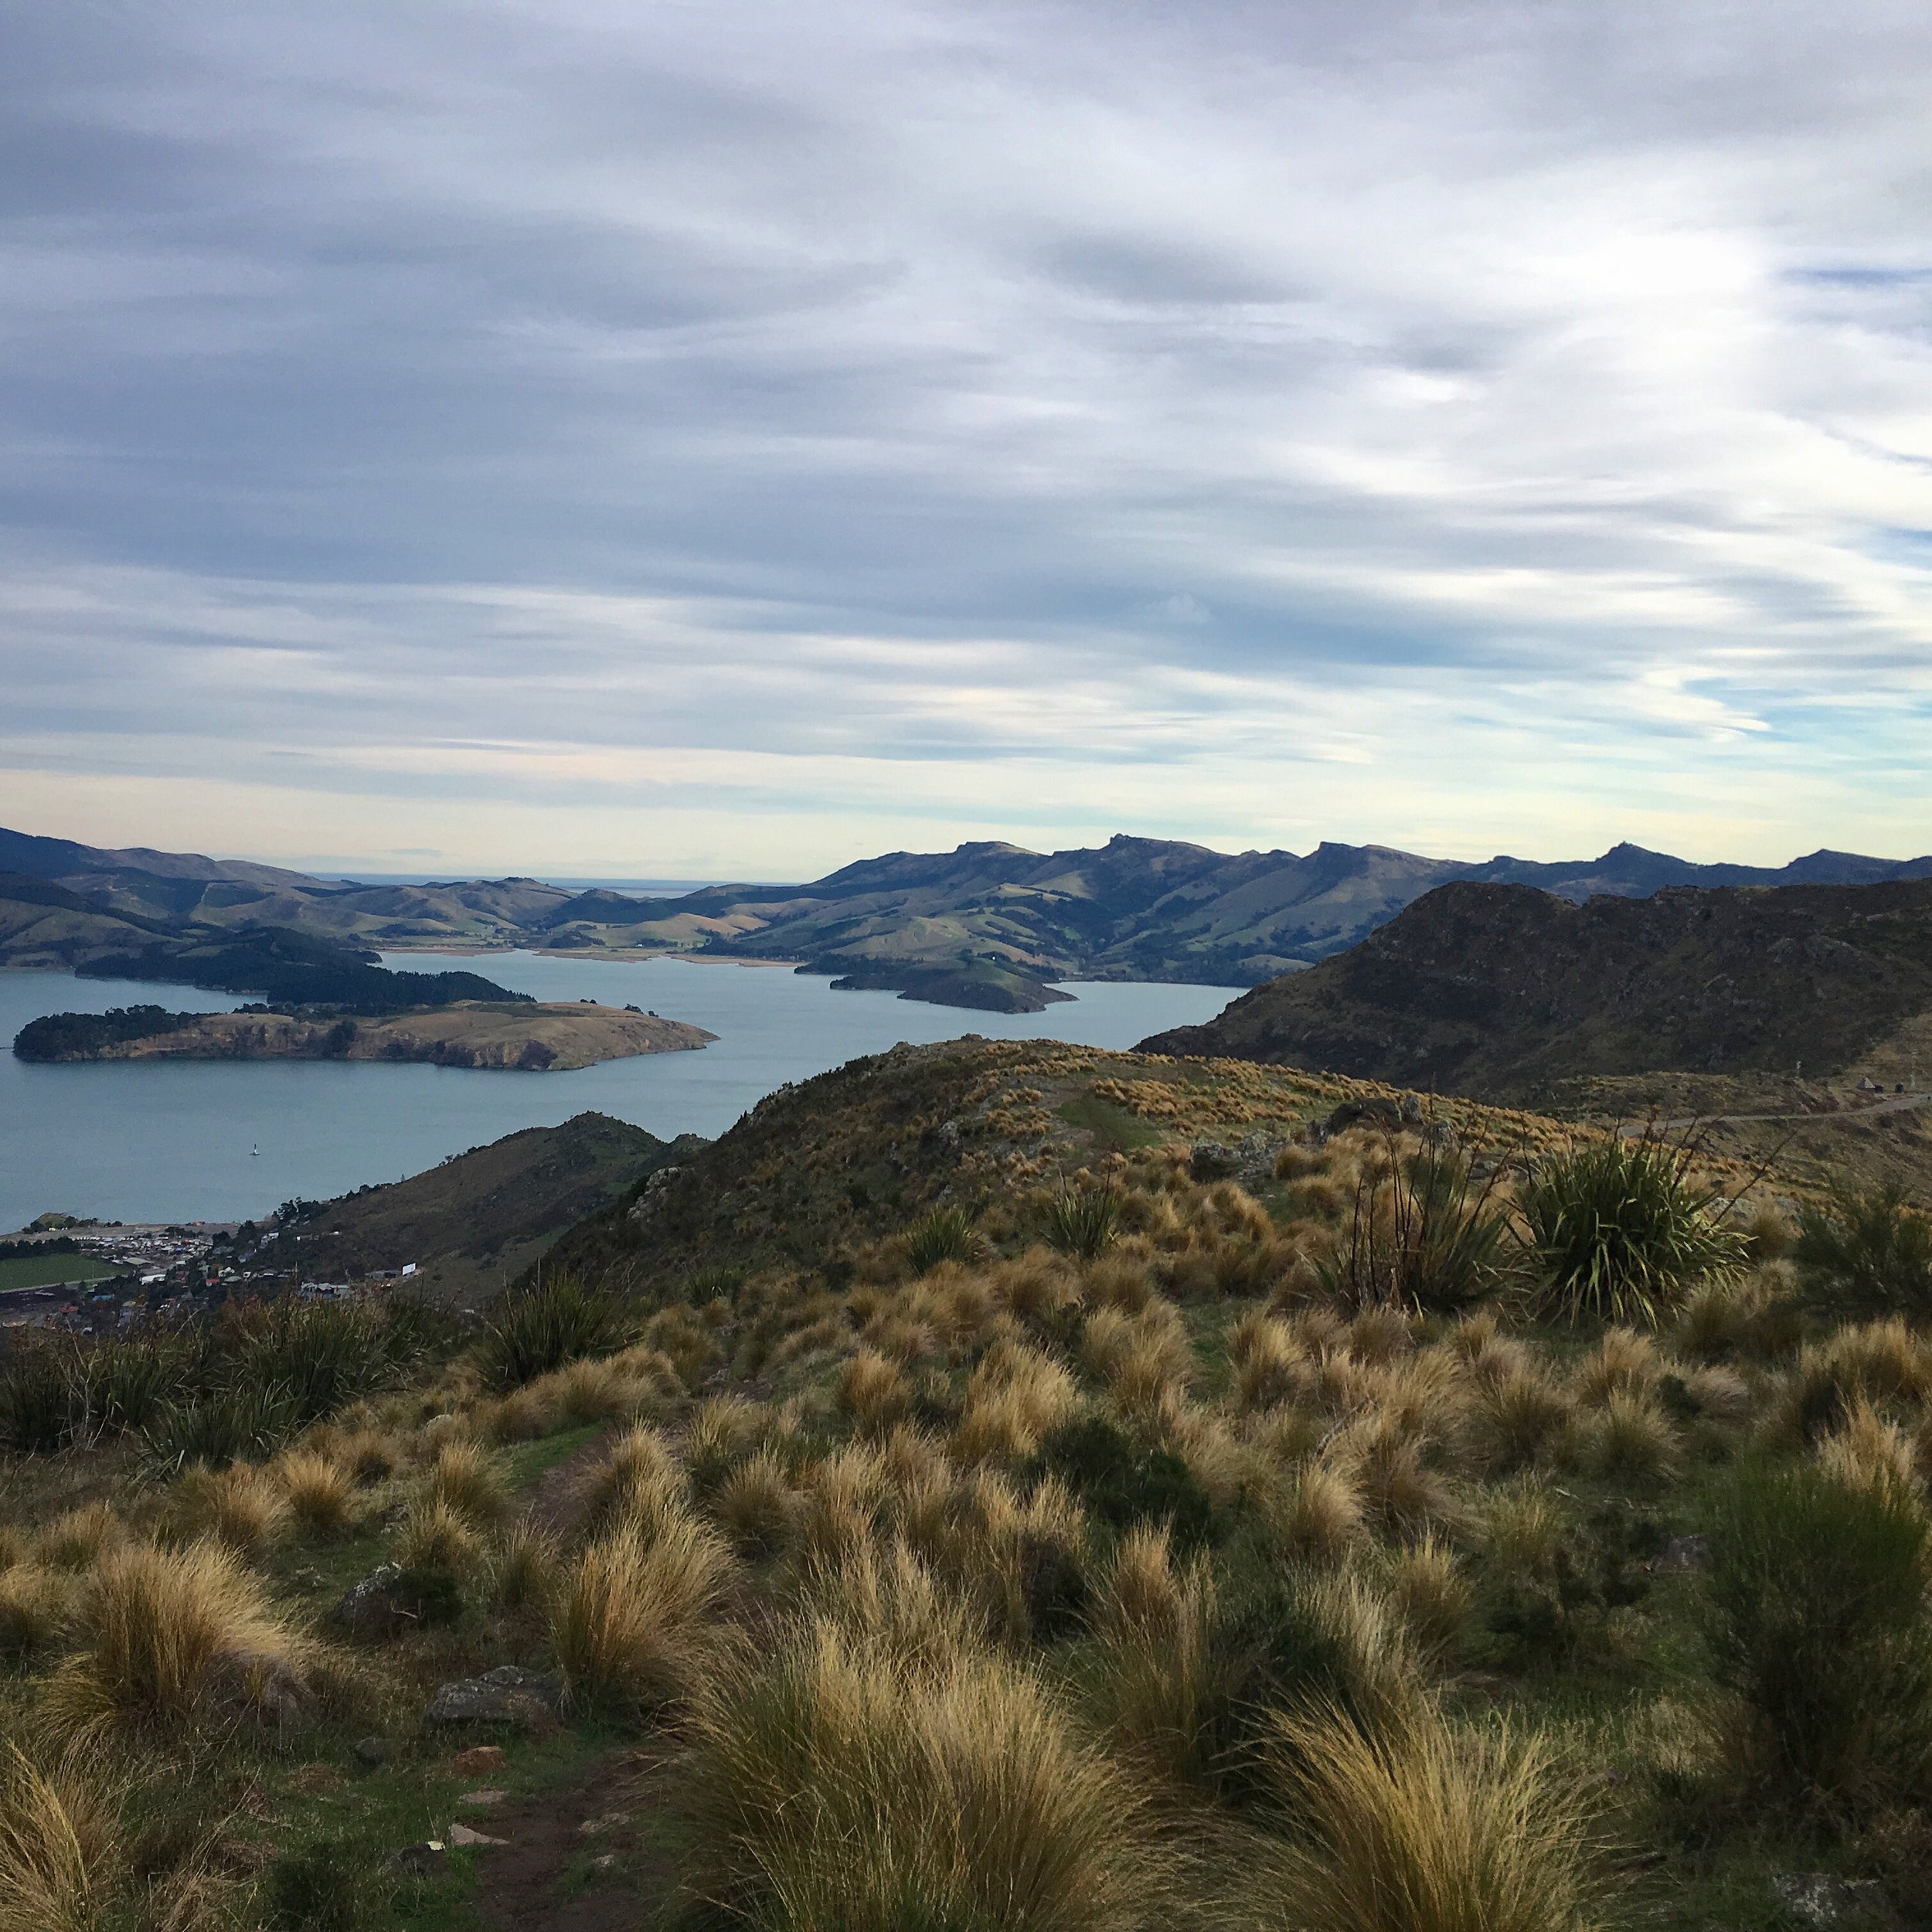 and of Lyttleton on the other side of the Cashmere hills.